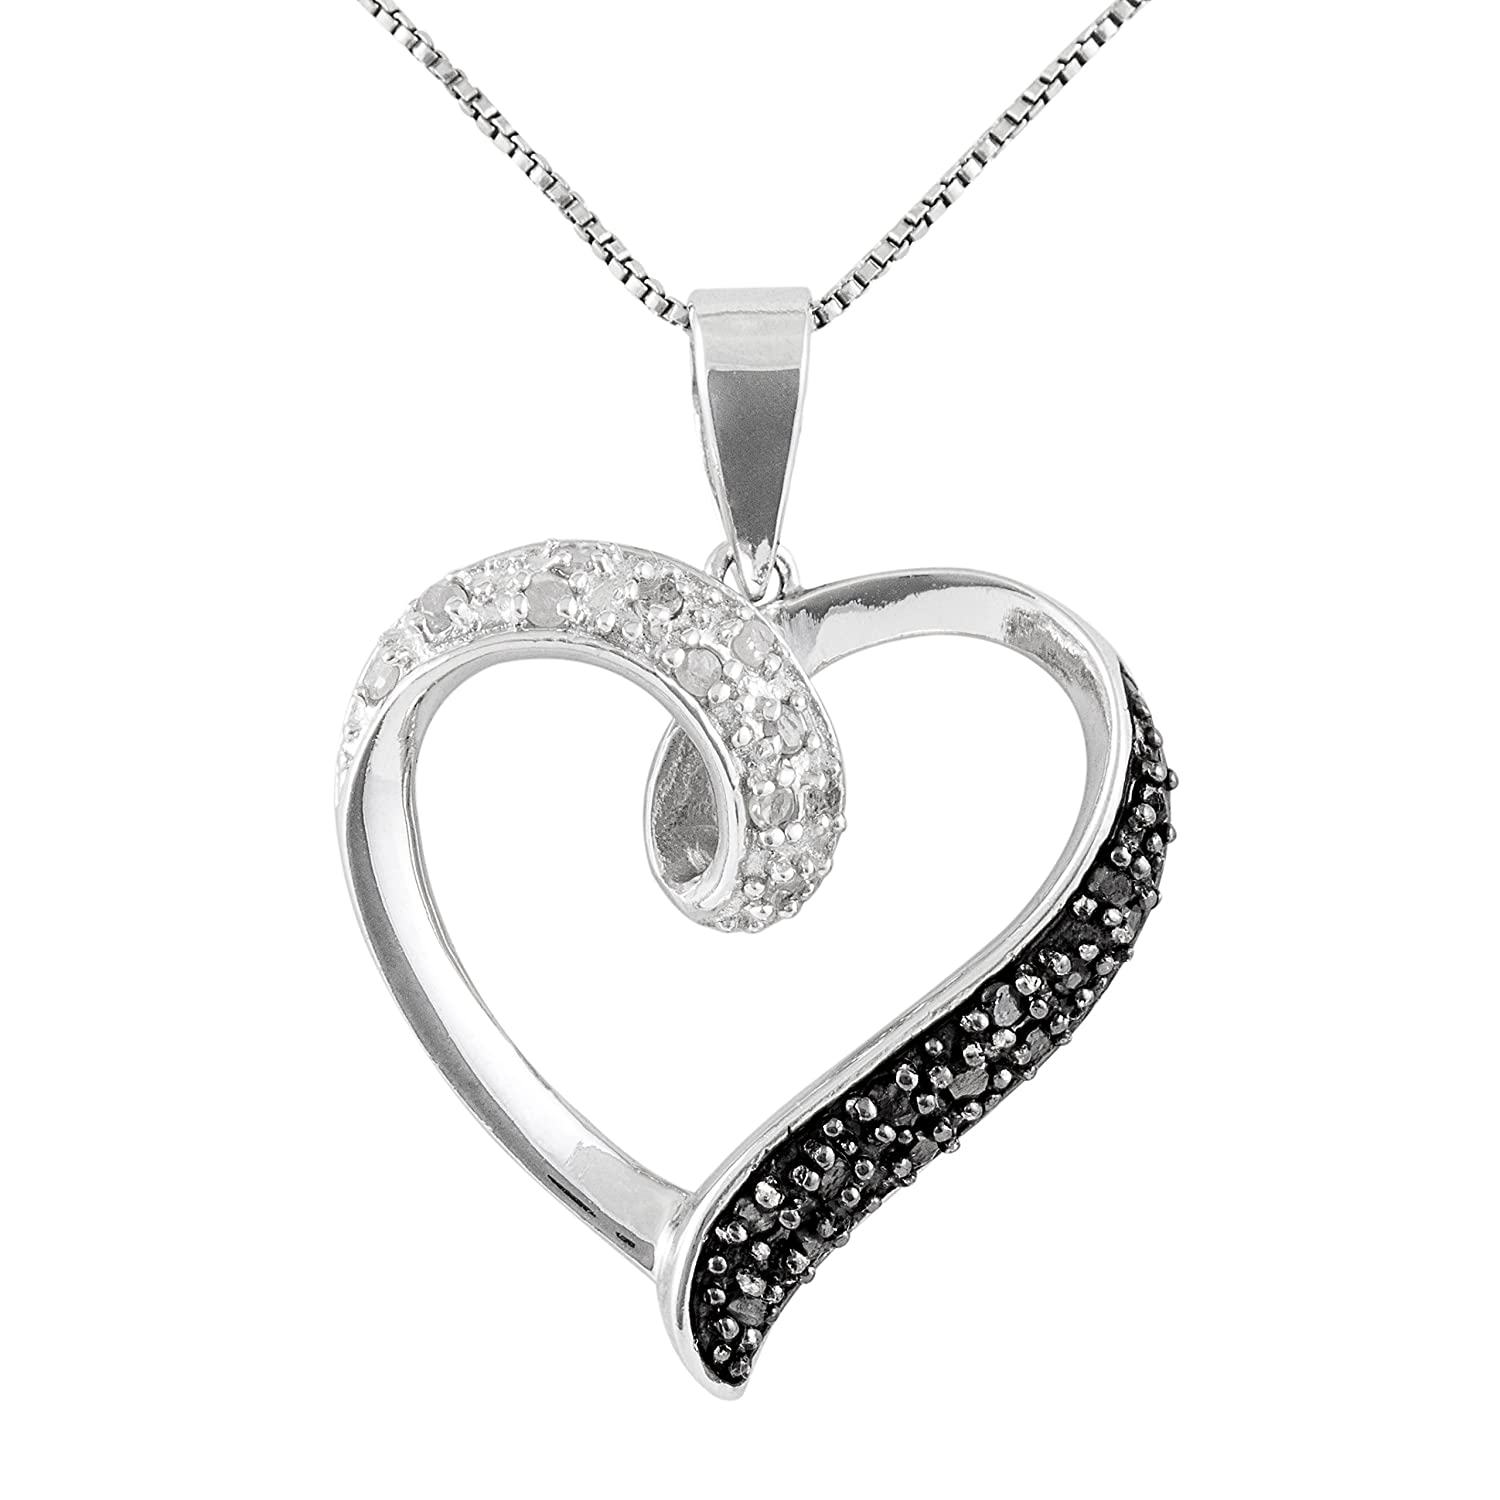 Sterling Silver 1 4 CTTW Black and White Diamond Heart Pendant 60